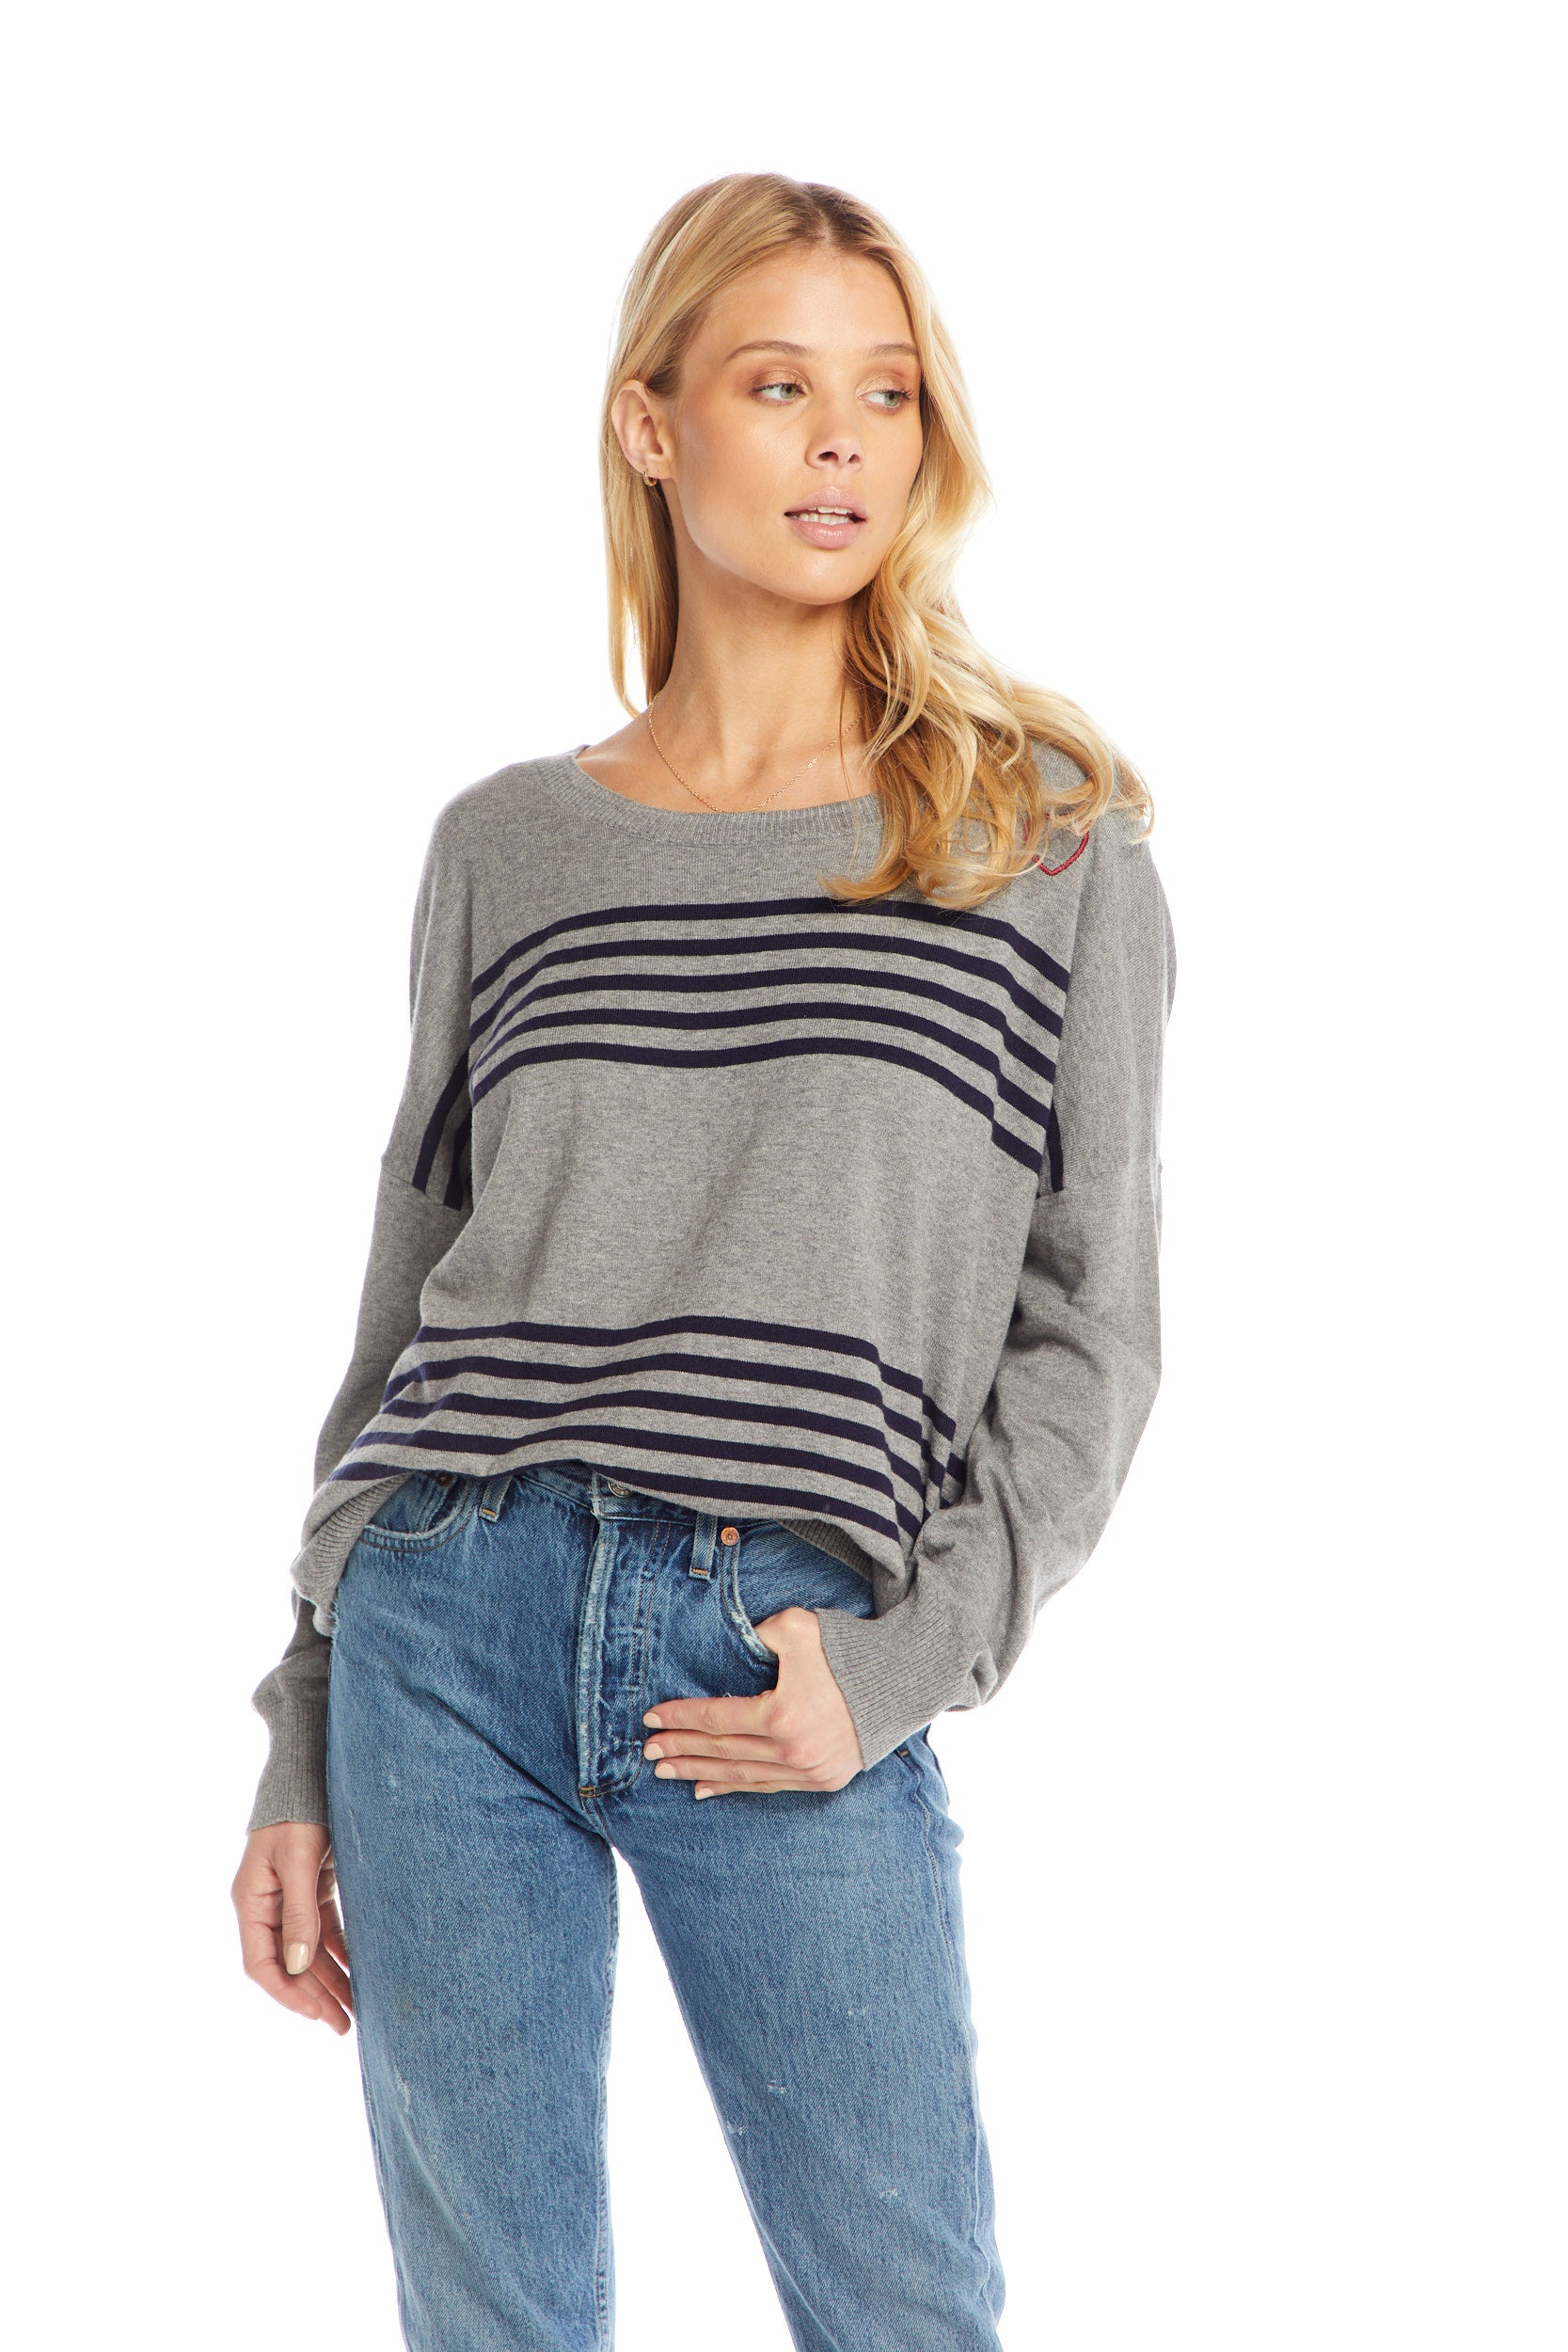 Cotton Cashmere L/S Wide Neck Dolman Pullover WOMENS chaserbrand4.myshopify.com